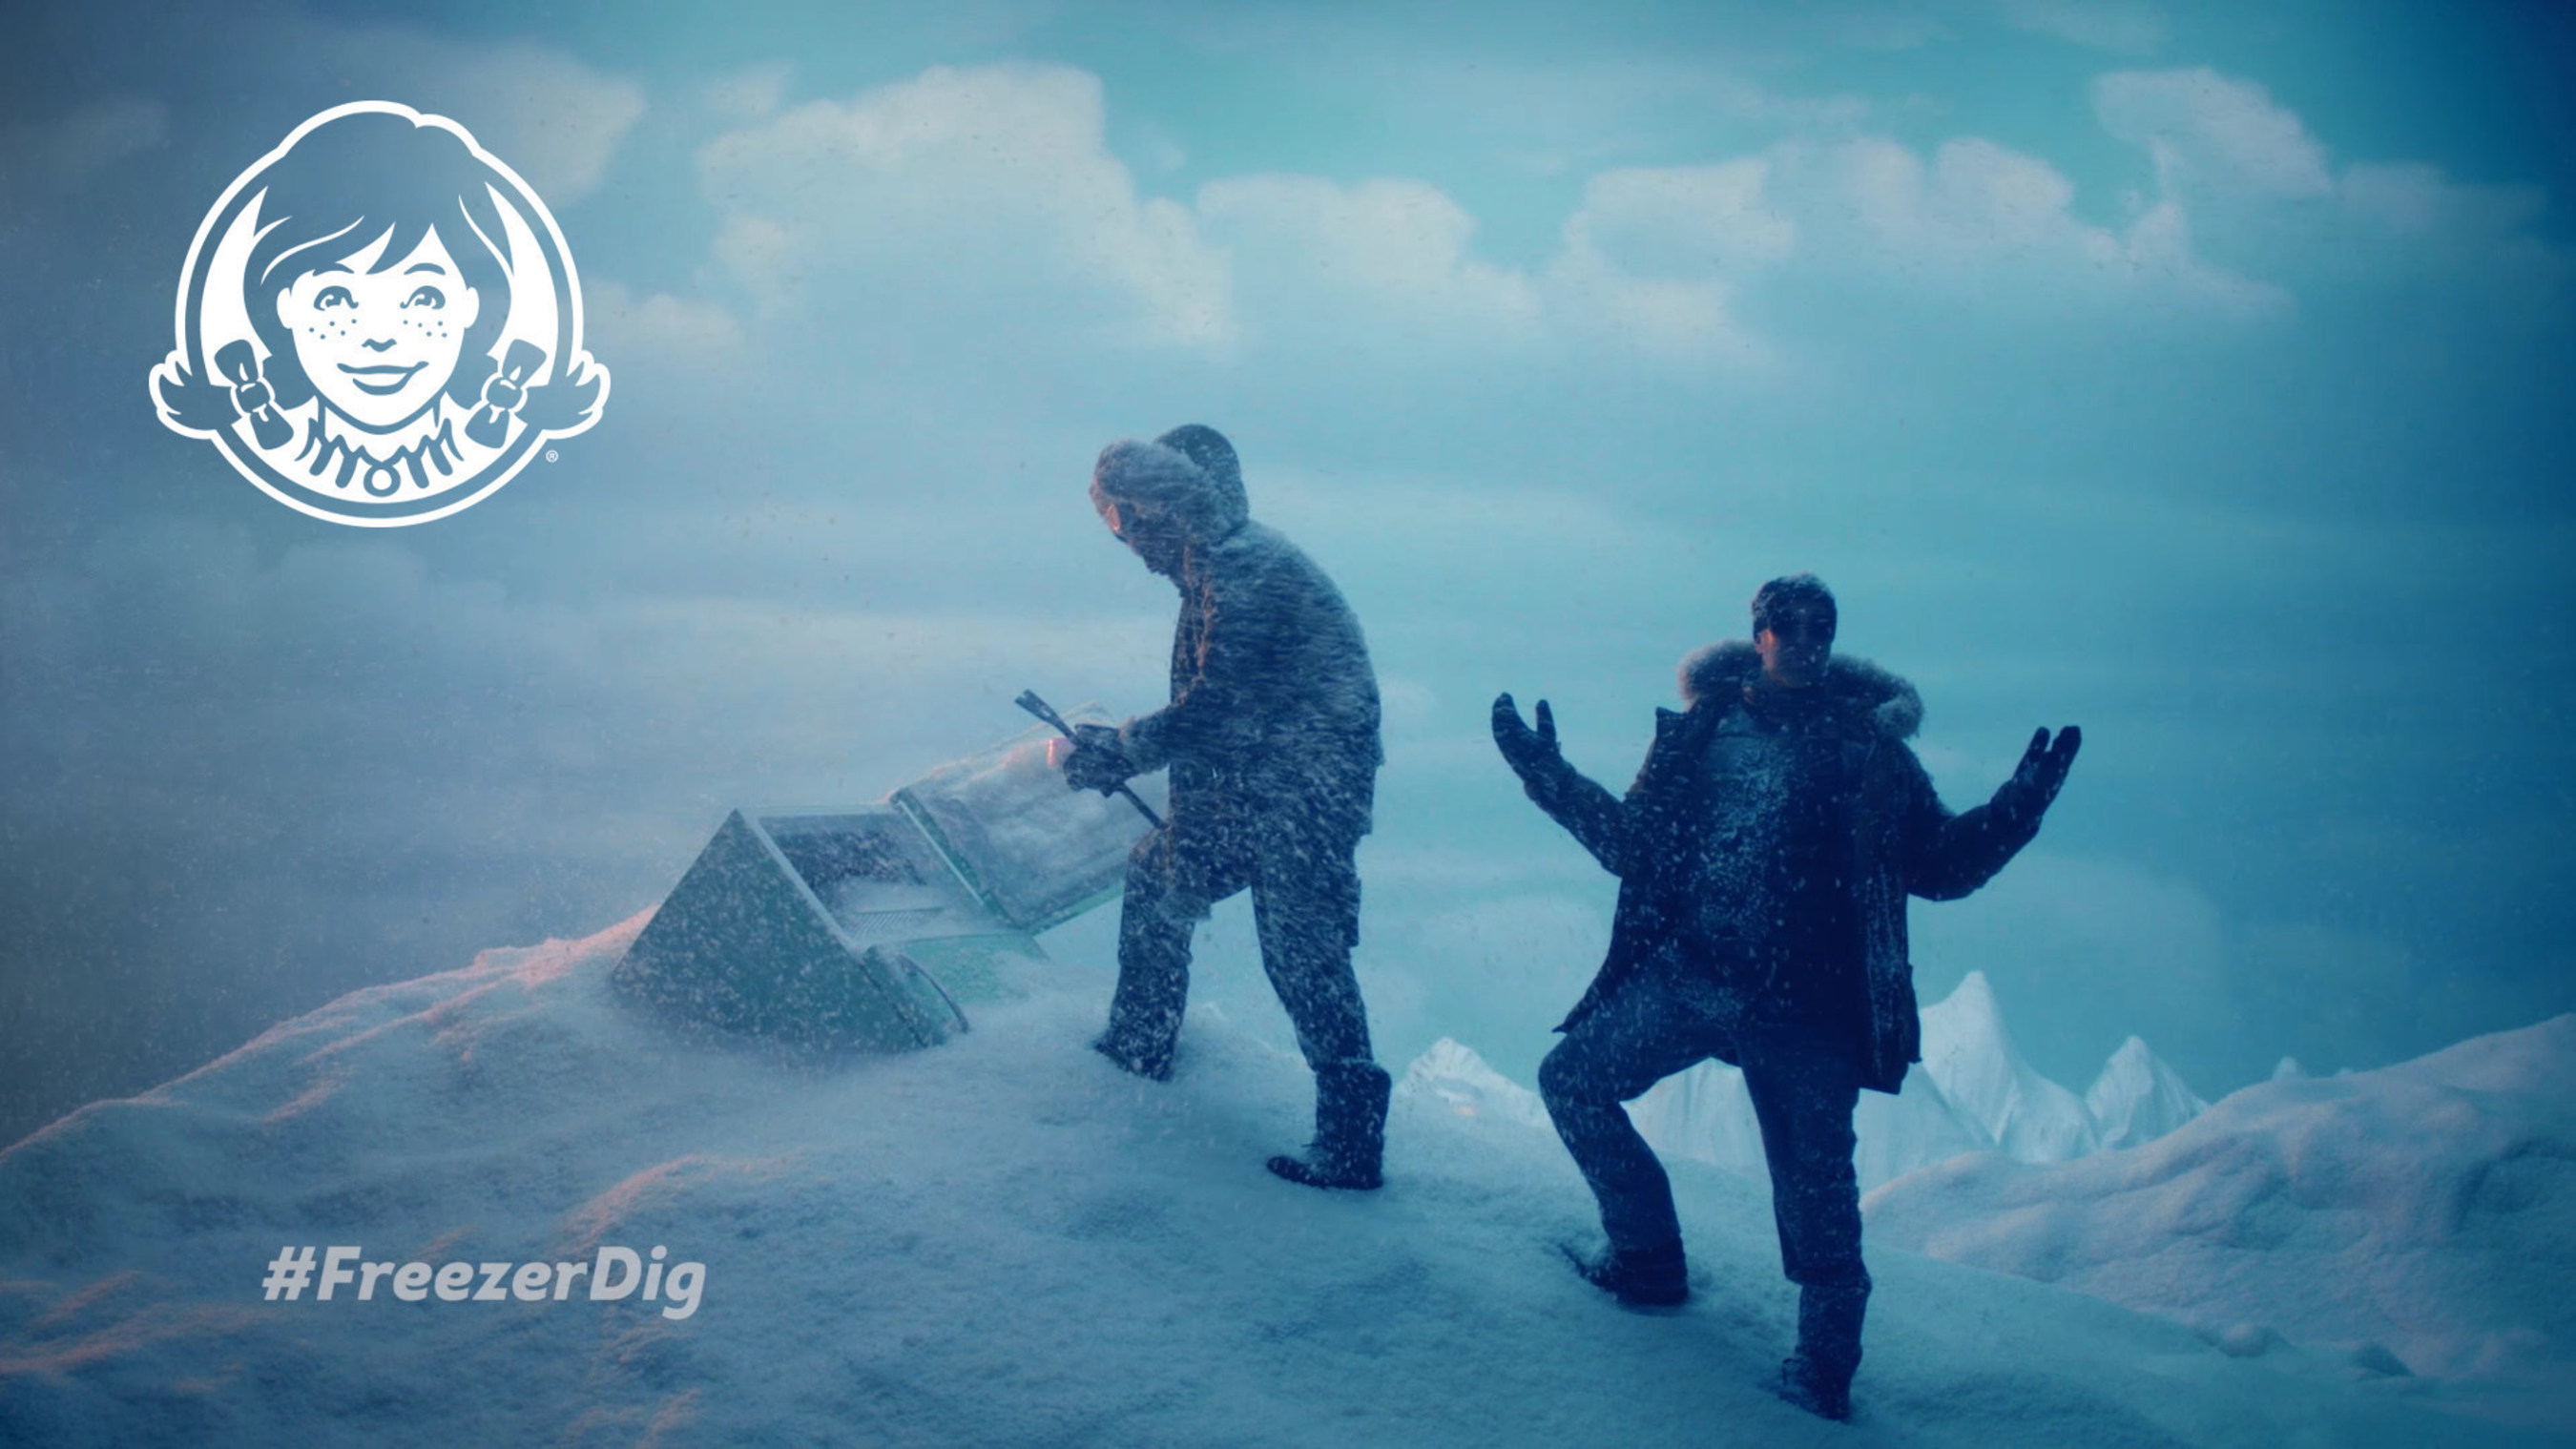 There are only a few more days to join Wendy's on an expedition to find the oldest thing in America's freezers. By snapping a picture/video of your old, frostbitten food and posting it to Twitter or Instagram with #FreezerDig and #Sweepstakes, you'll be entered to win free, fresh and never frozen Dave's Singles for a year. A winner will be named every day through Sunday, Nov. 20. Help America find a better, fresher frontier by joining Wendy's Freezer Expedition.